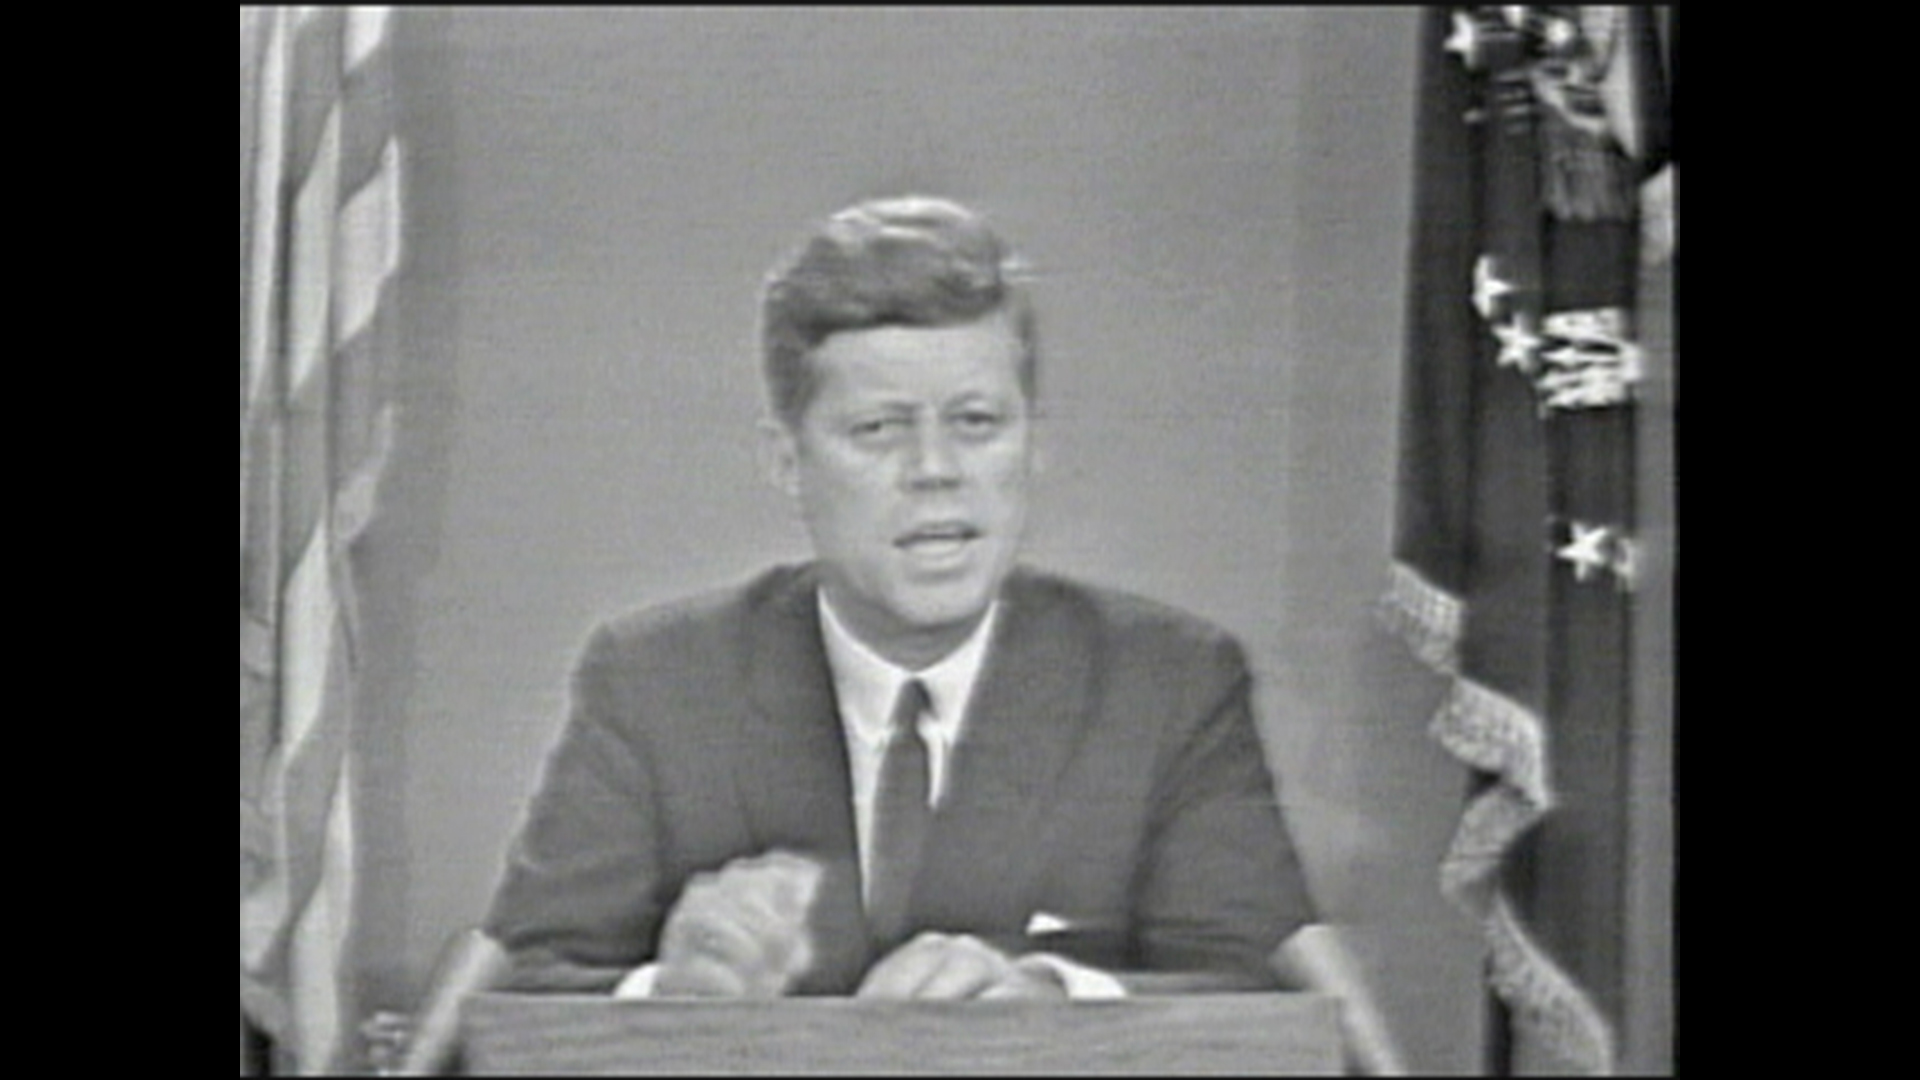 President Kennedy addresses the nation on civil rights - Video on ...